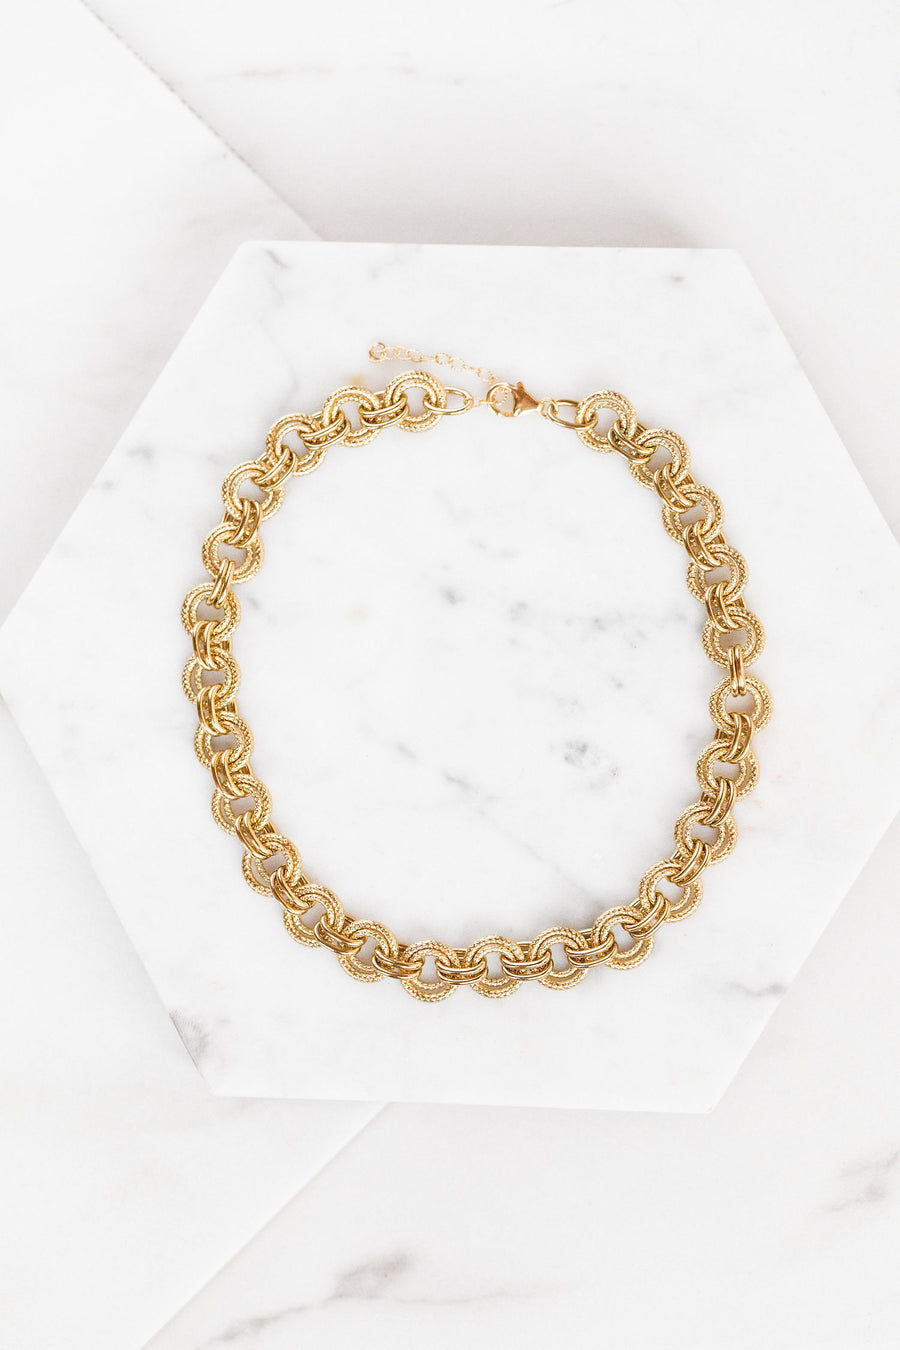 Find the perfect necklace you're looking for from Charme Silkiner! This beautiful chunky 14K Gold Overlay Necklace with amazing textured detail is pure perfection. Great for layering or wearing alone the Blaine Necklace is the perfect piece of unique jewelry that everyone should own.